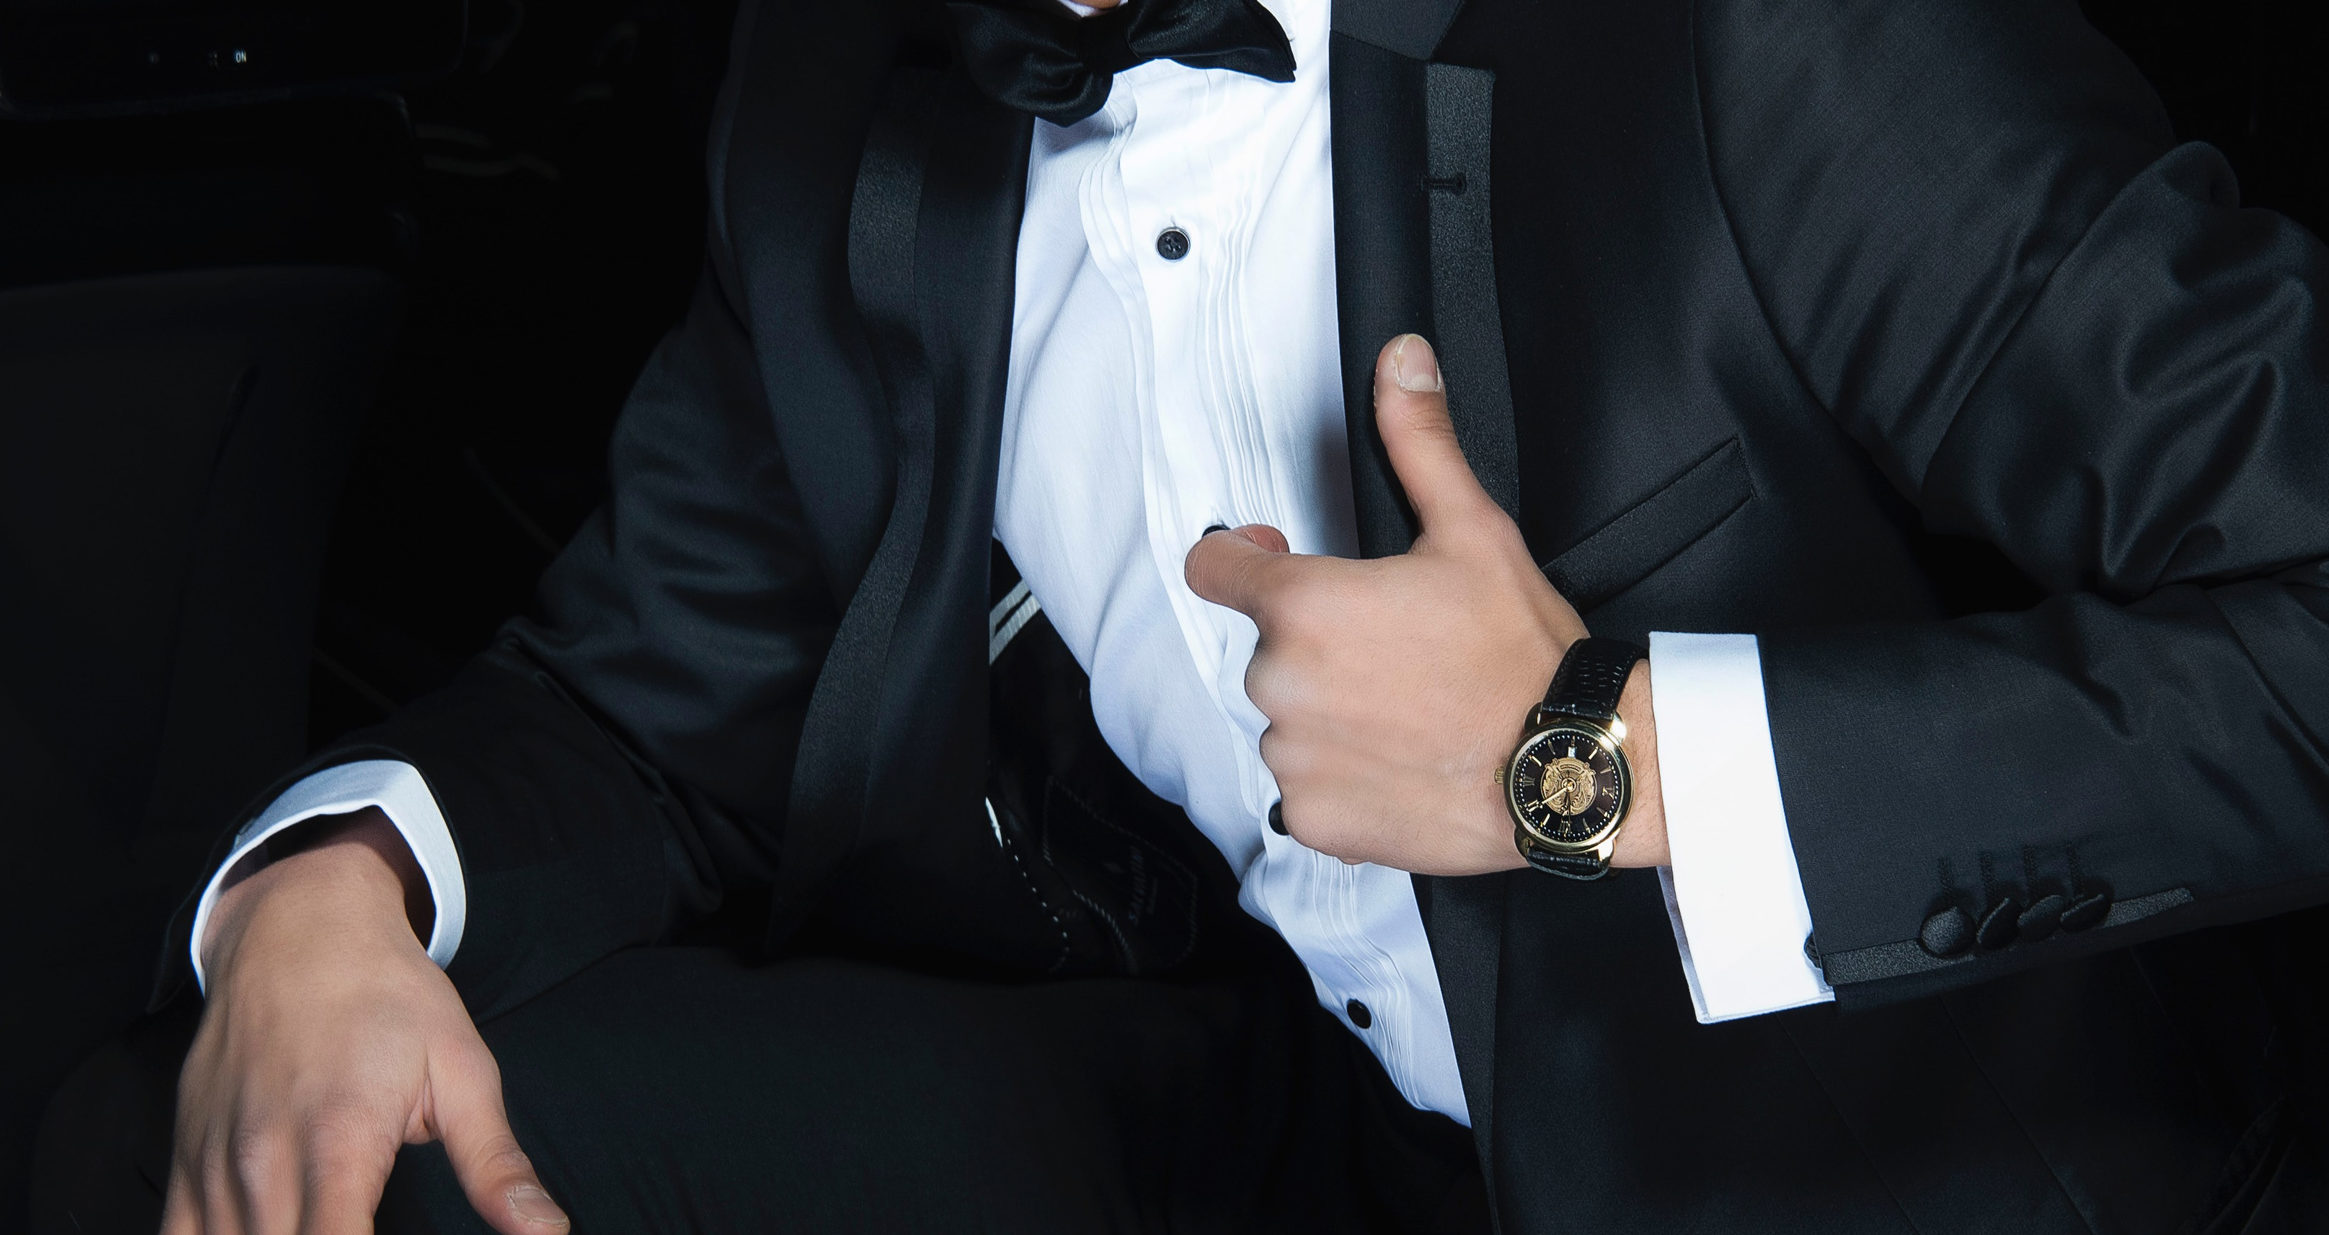 All you need to know about the full anatomy of a tuxedo